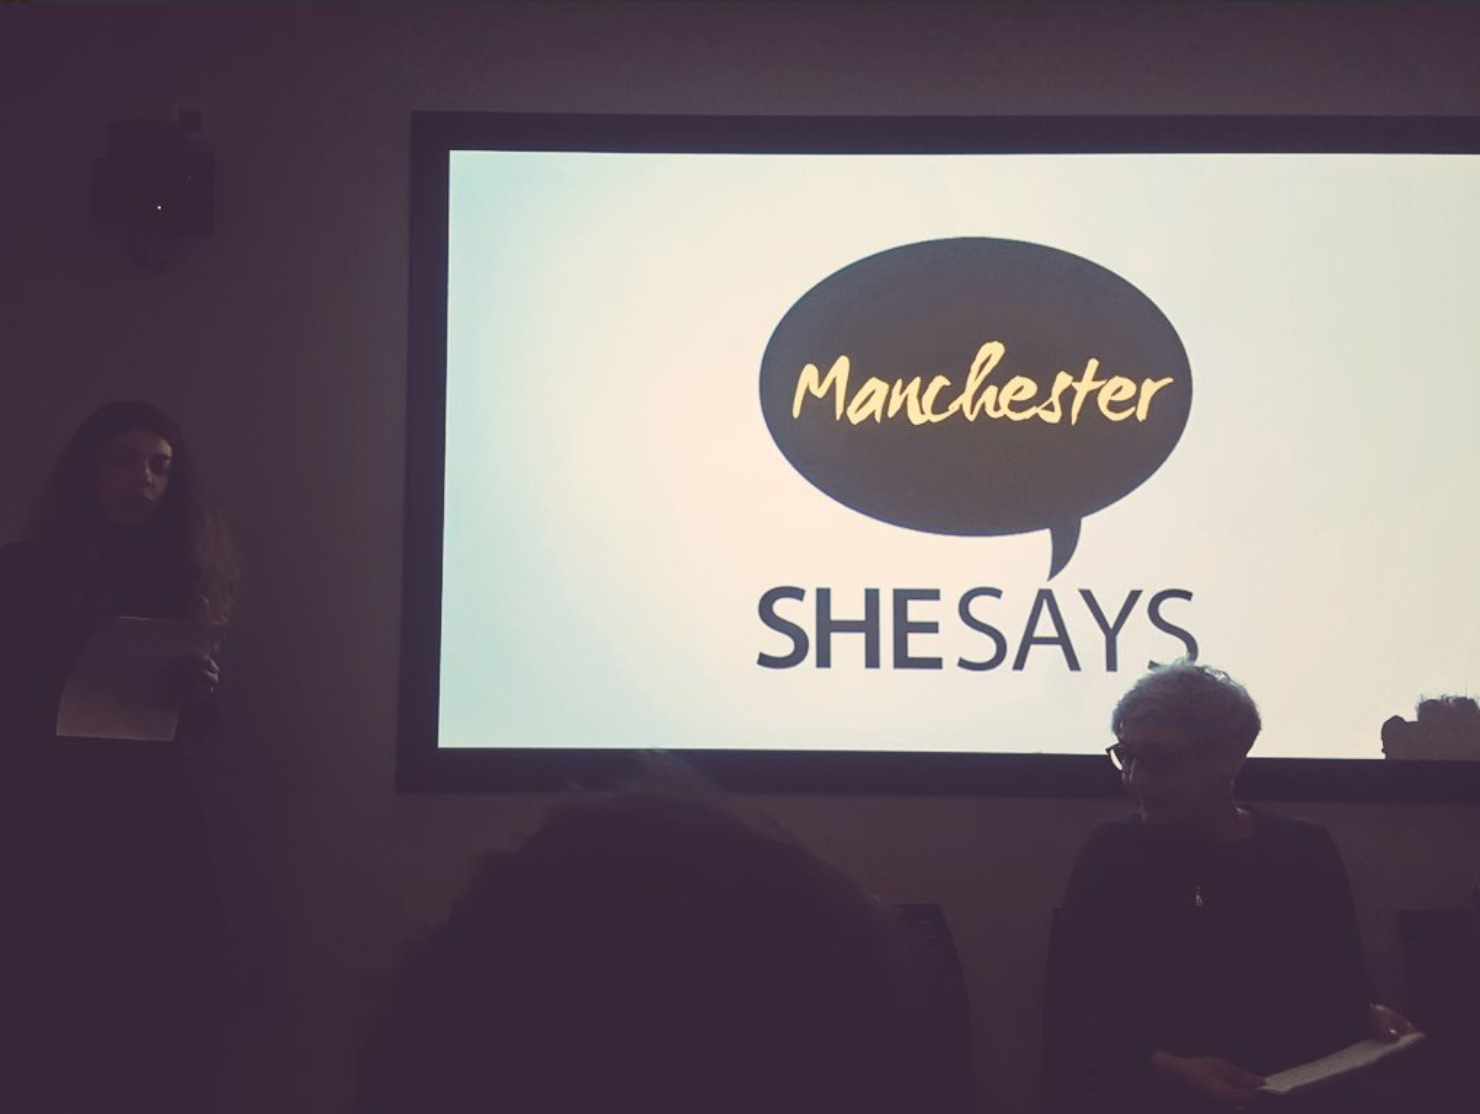 Thurs 24 January 2019 - SheSays MCR helps women in digital and creative industries widen their networks and develop their career paths through meet-ups, mentoring and inspiring events.Kicking off their 2019 series, SheSays MCR return with a meet-up focusing on Conflict, what it means to individuals and wider society, ran alongside Holocaust Memorial Day.A great bill of inspiring women sharing amazing stories and widening the debate on conflicts past, present and future.Free Event, register here